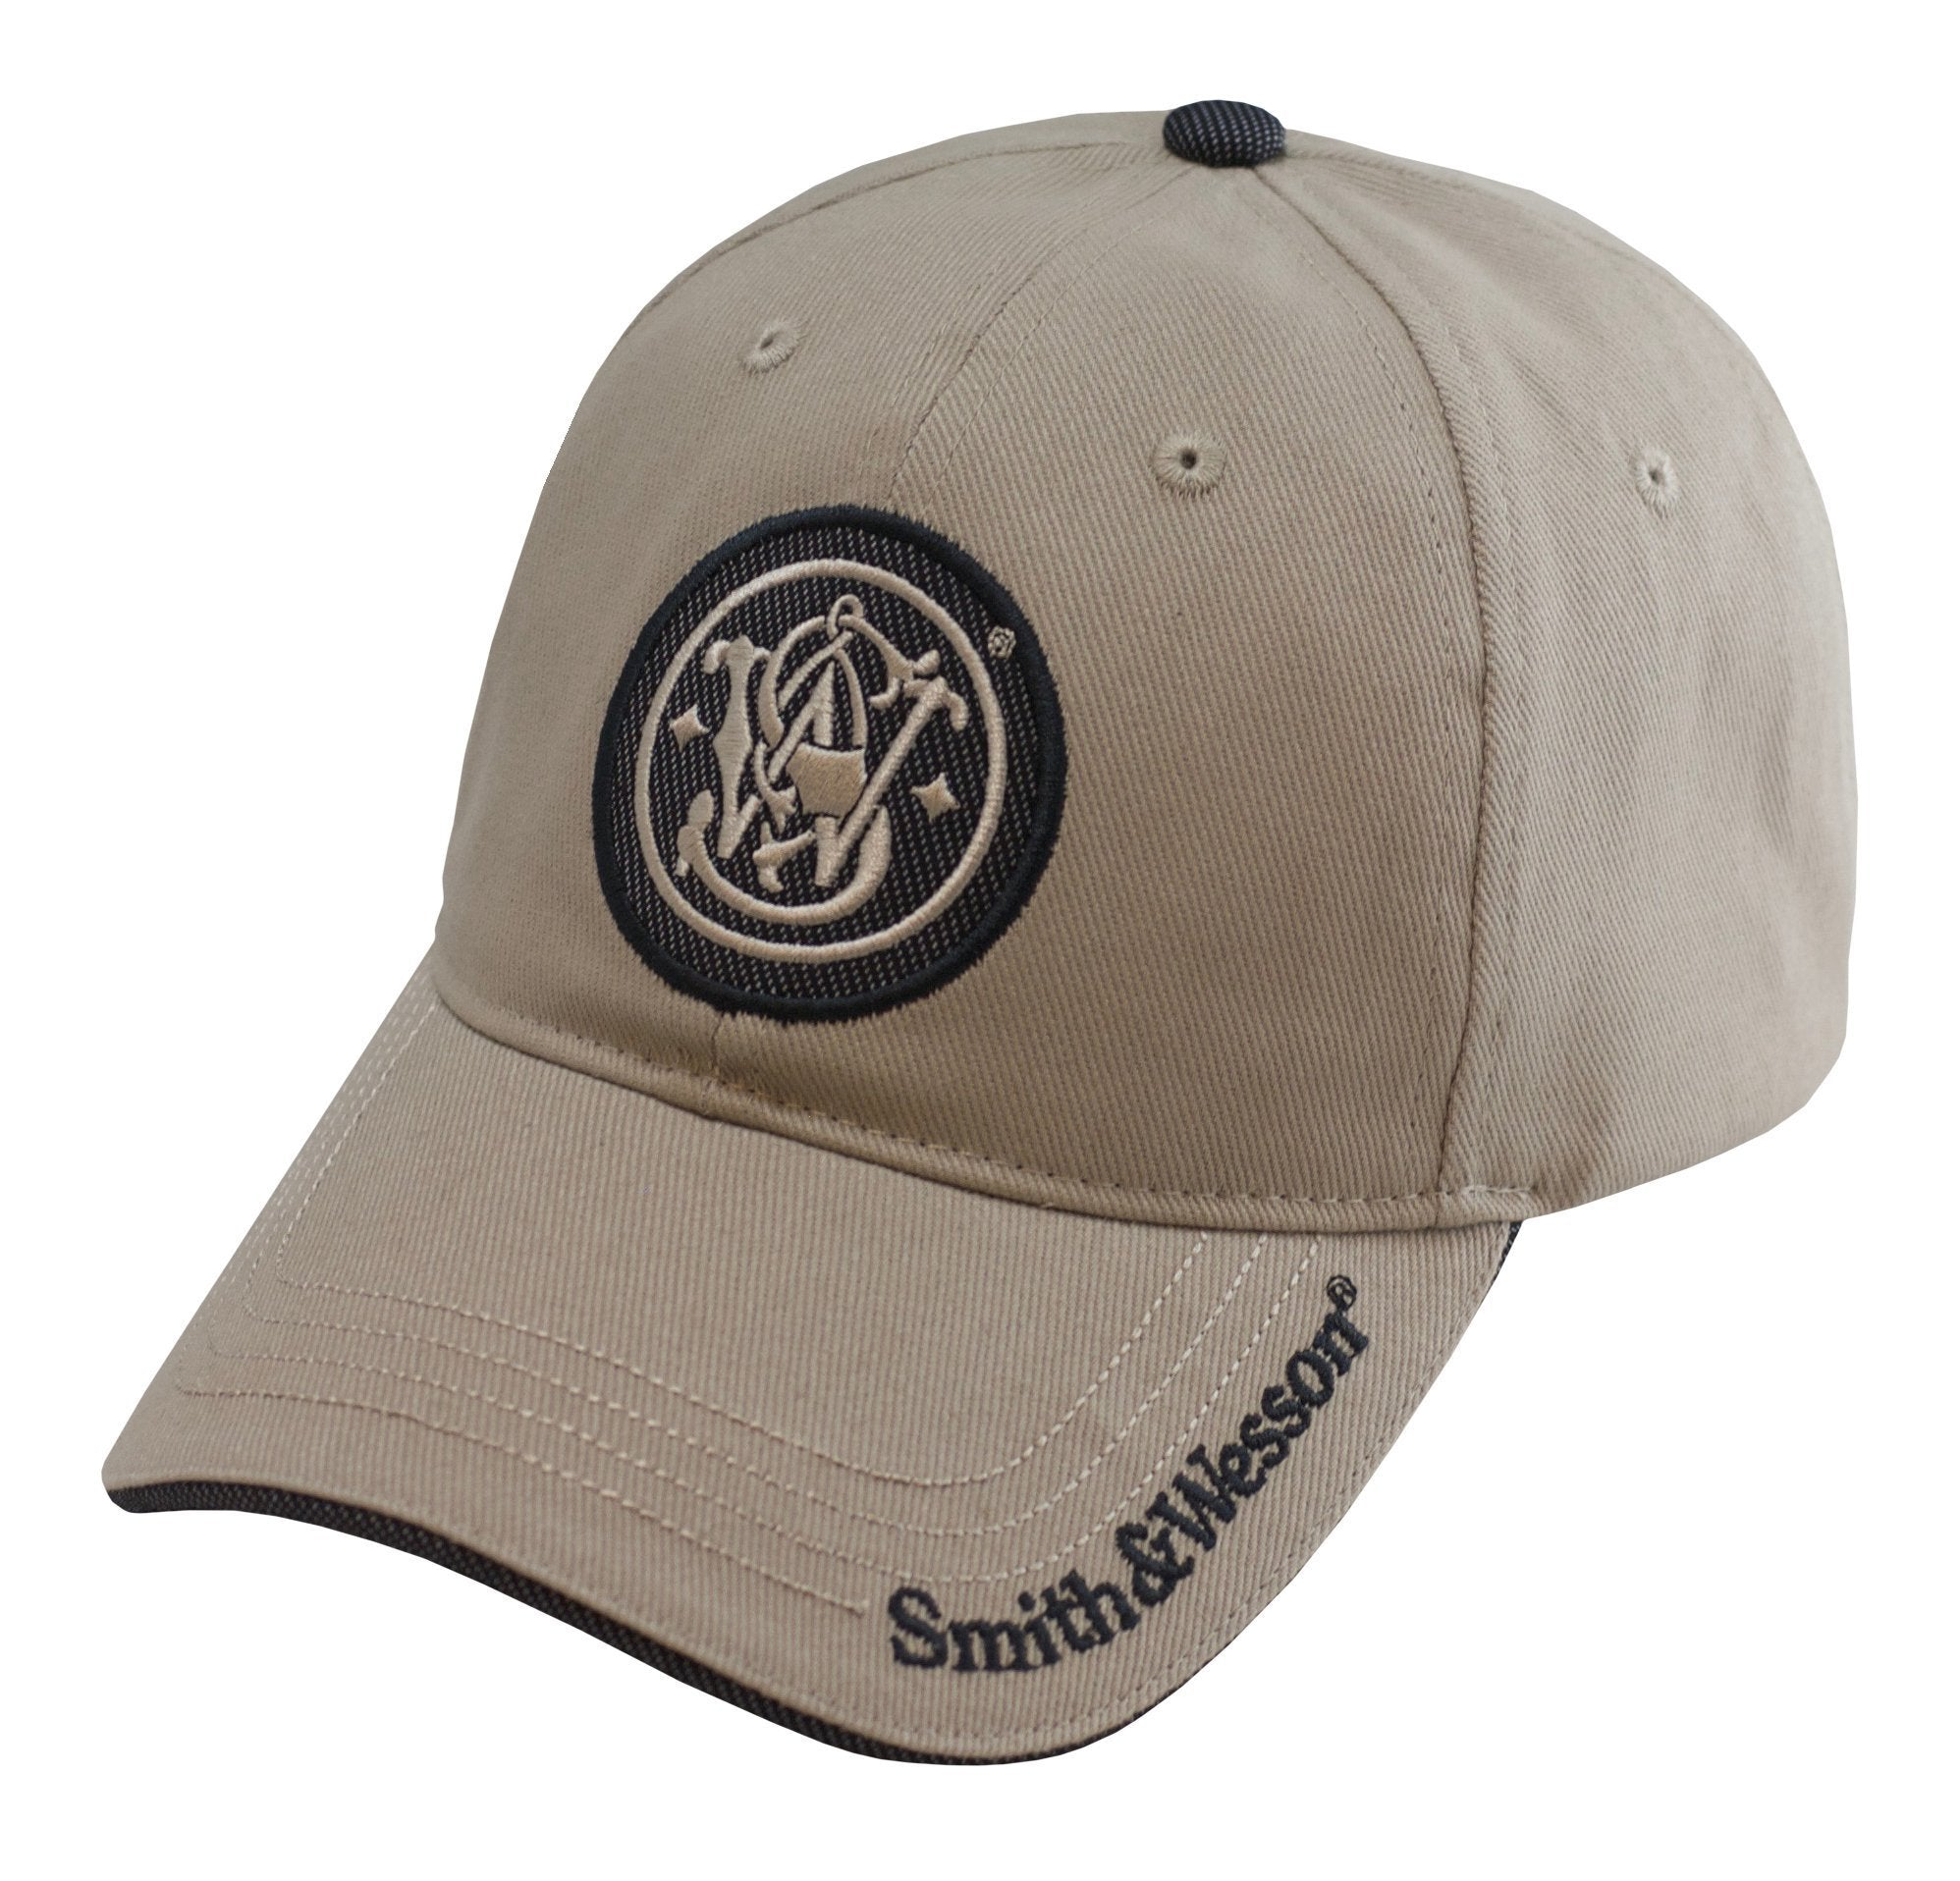 S&W Embroidered Circle Logo Cap with Brim Text - A1759